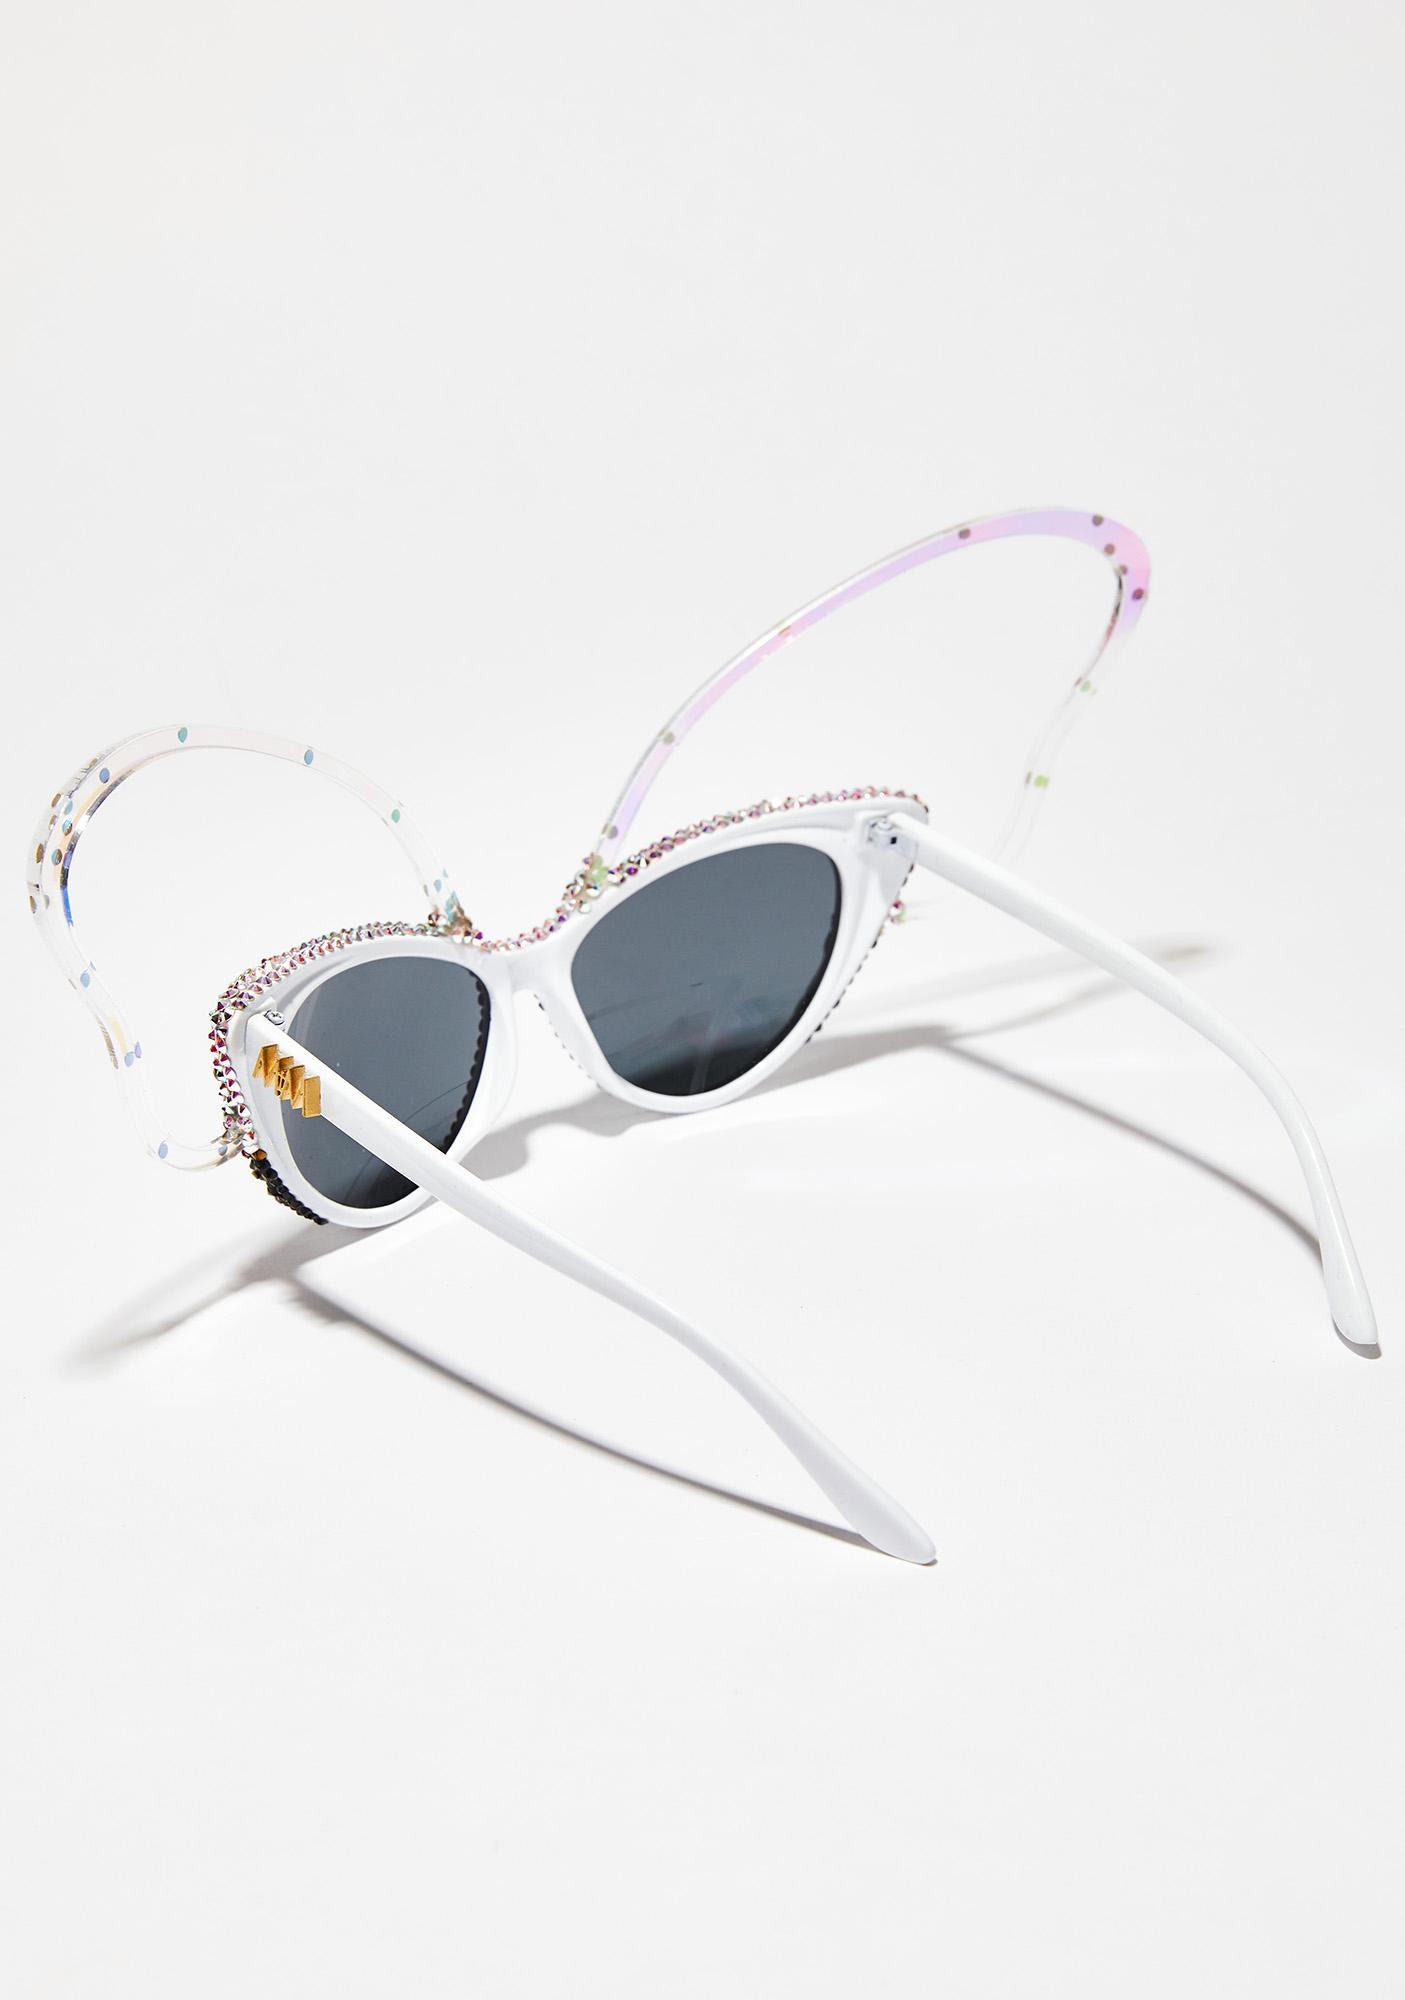 ca21db0cdeab5 ... Material Memorie Itho Sunglasses